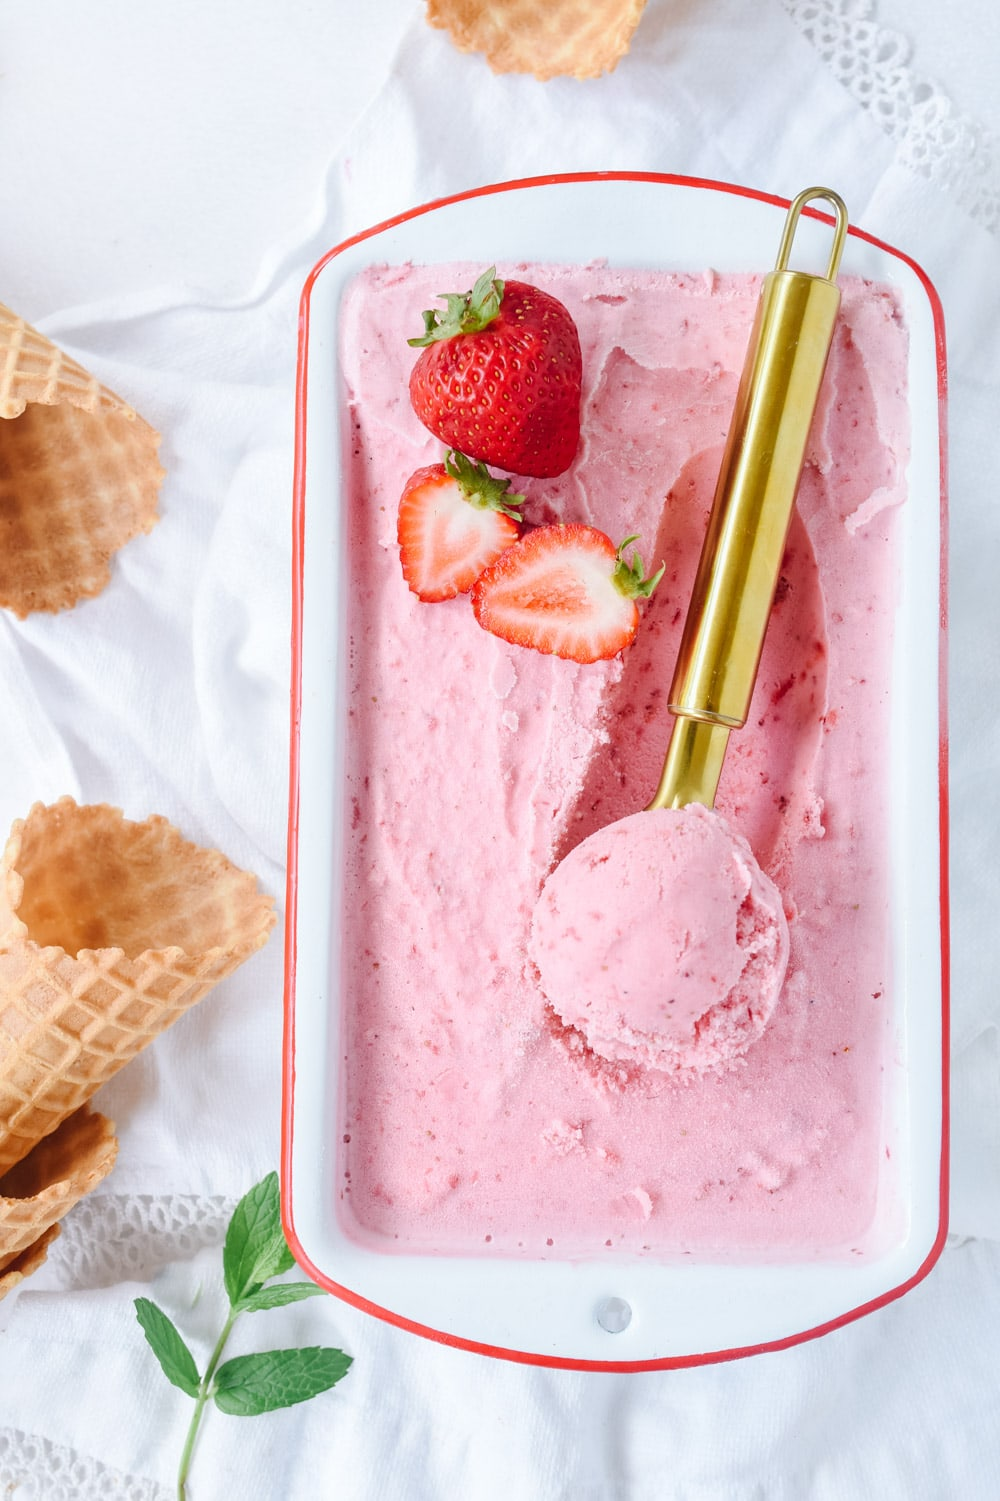 scoop of strawberry ice cream